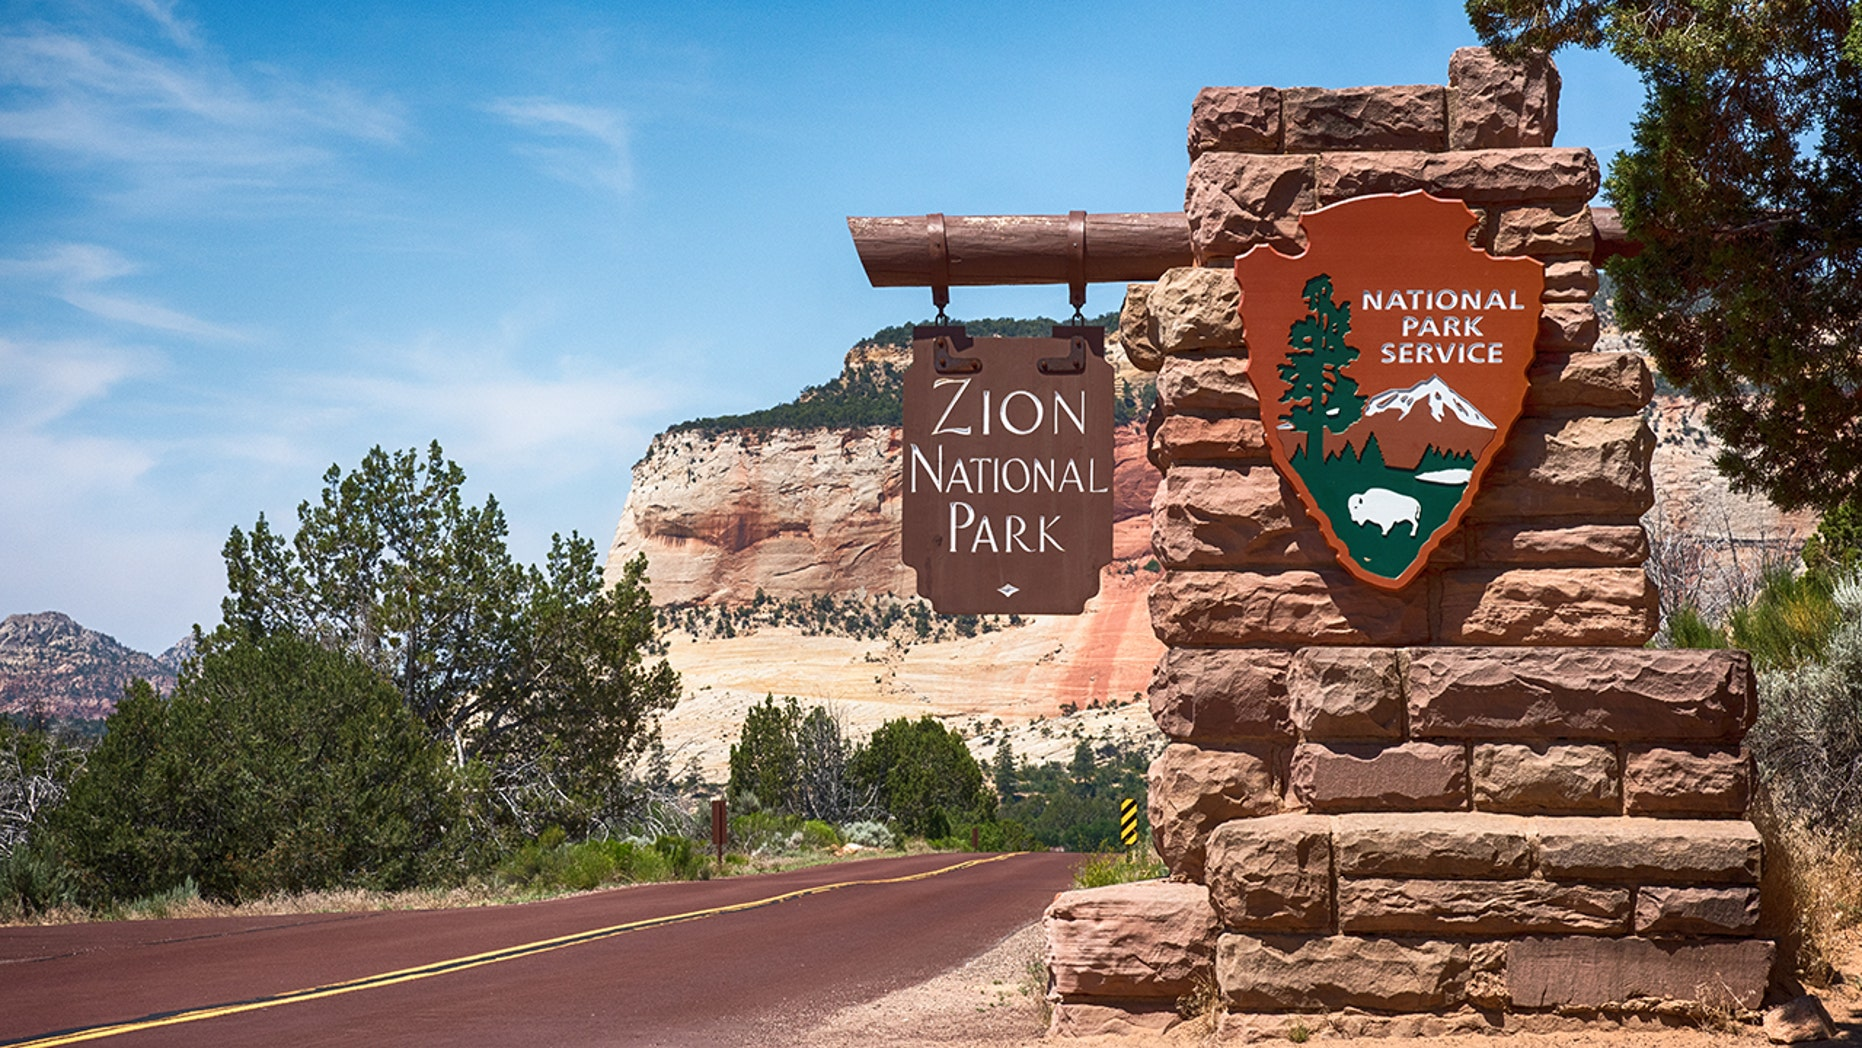 Hiker rescued after getting stuck in quicksand at Zion National Park